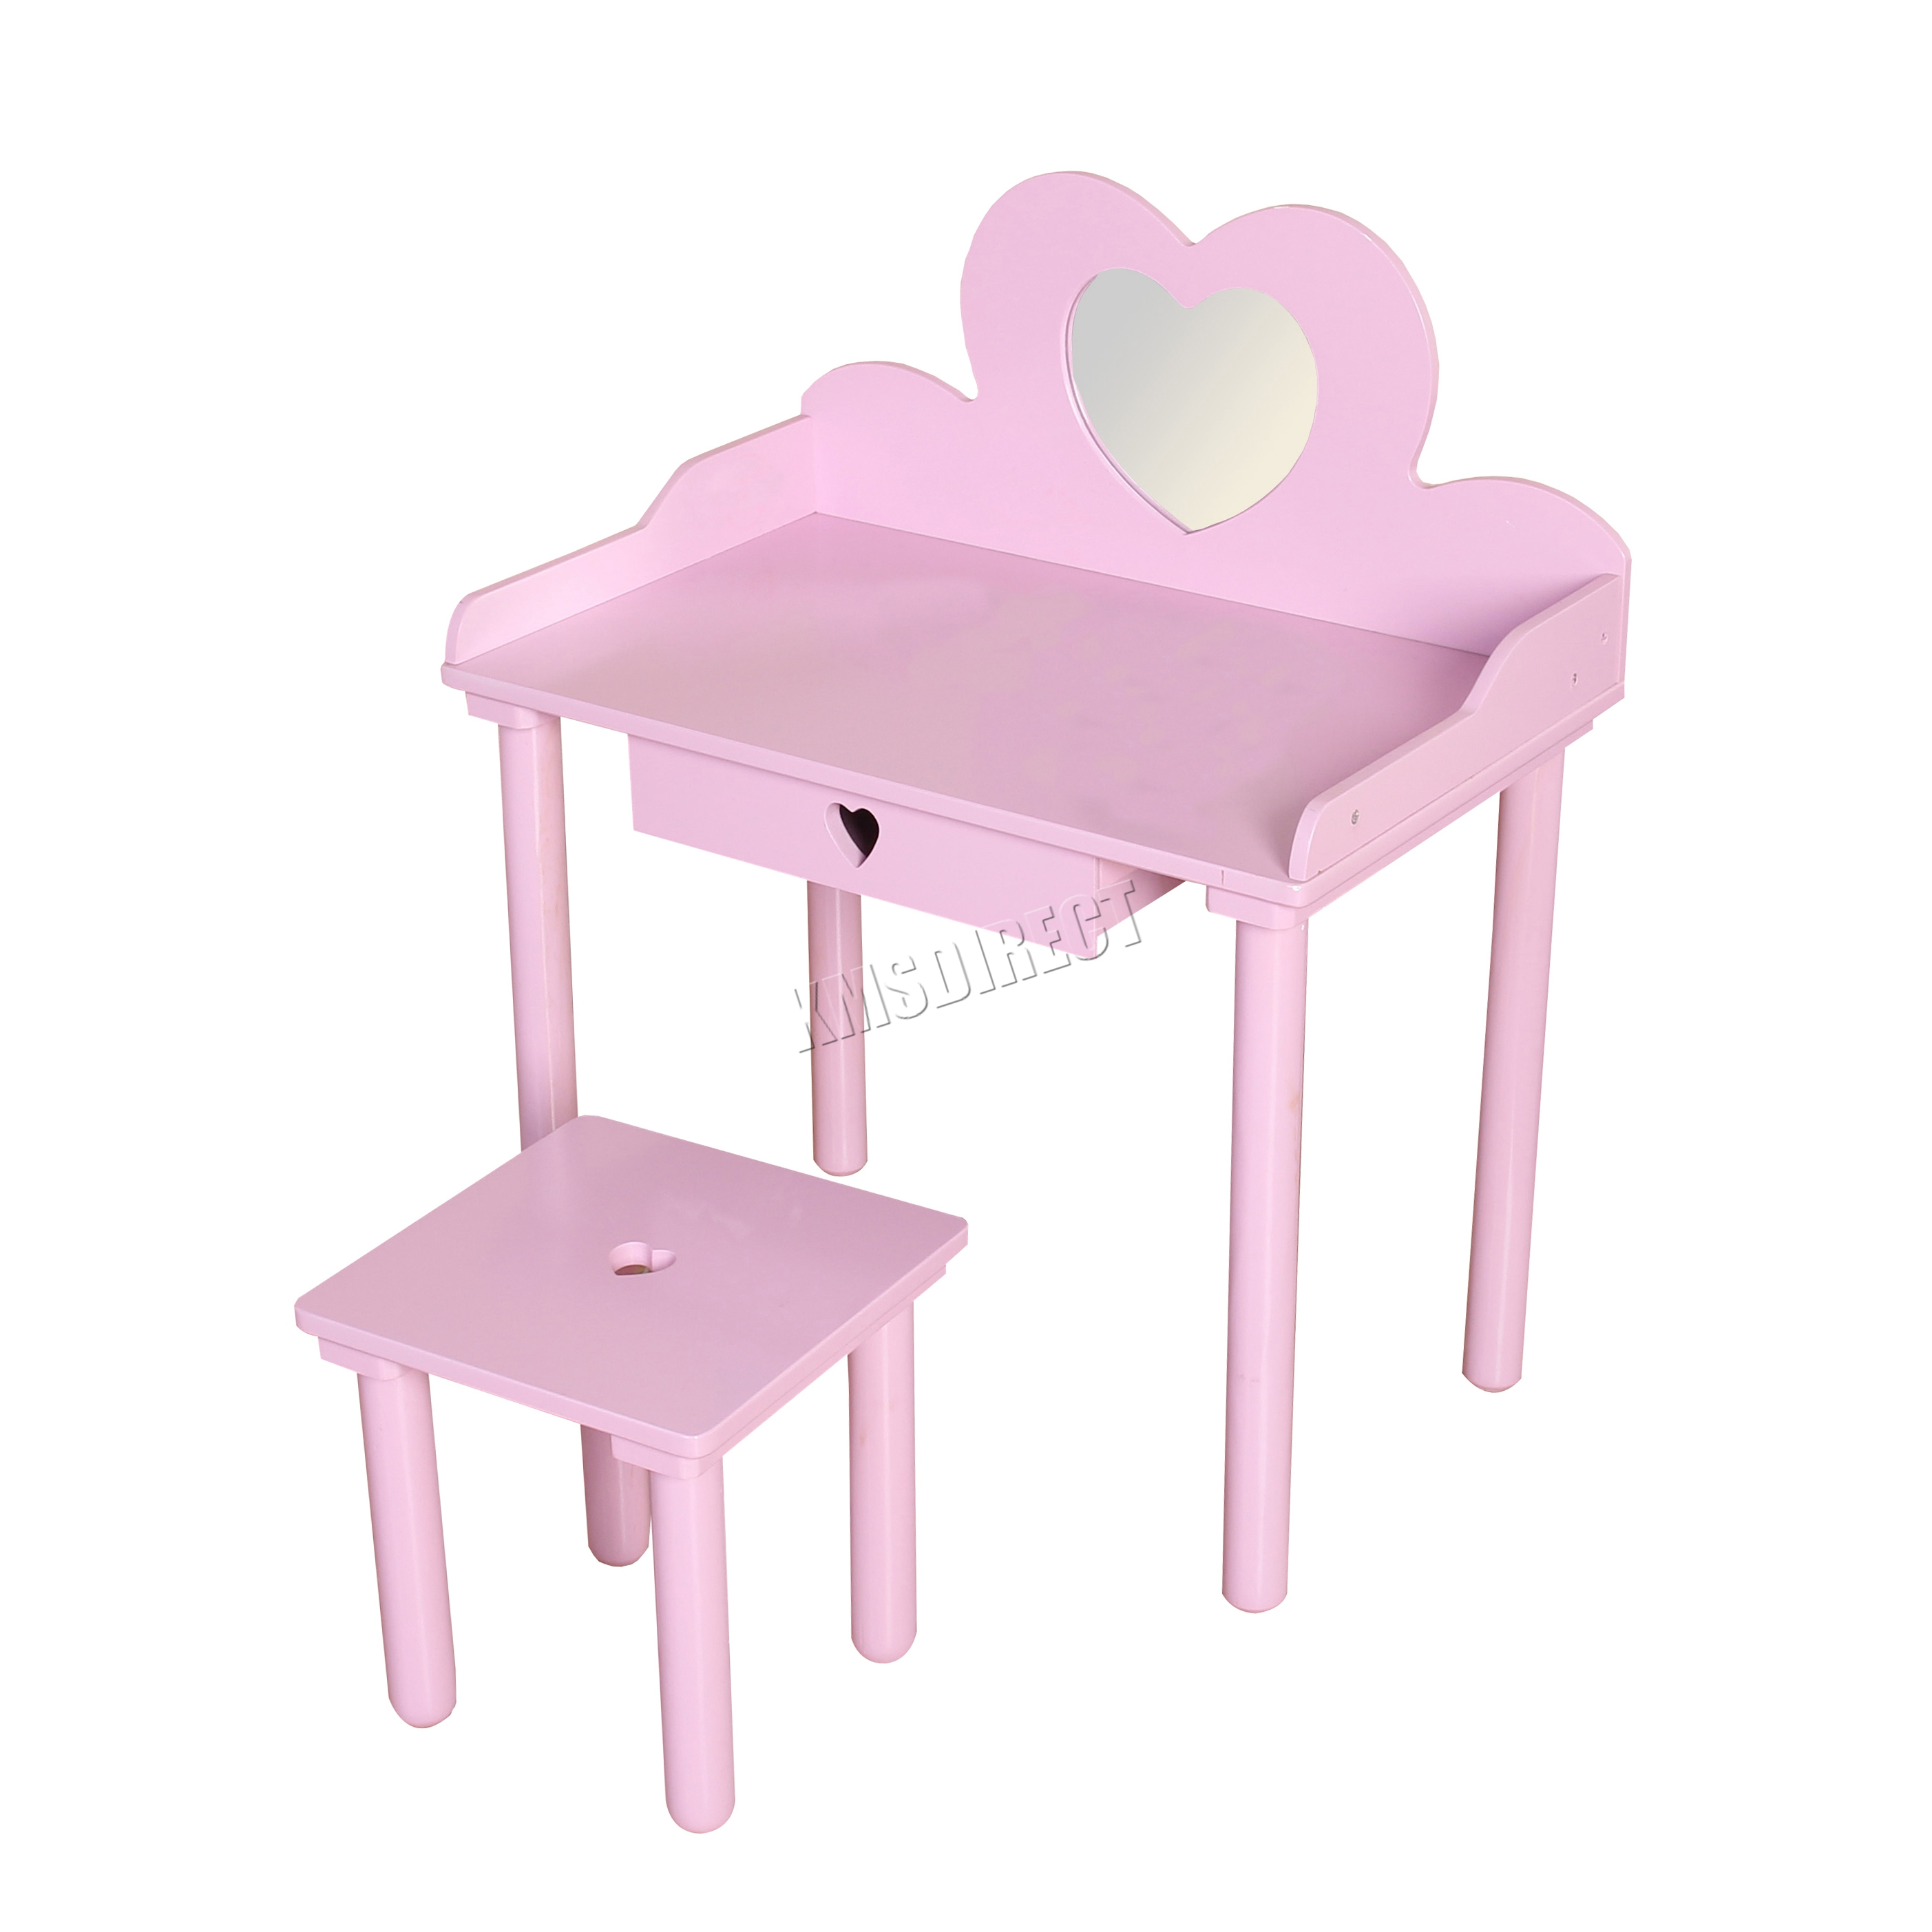 Foxhunter kids girls dressing table stool set makeup